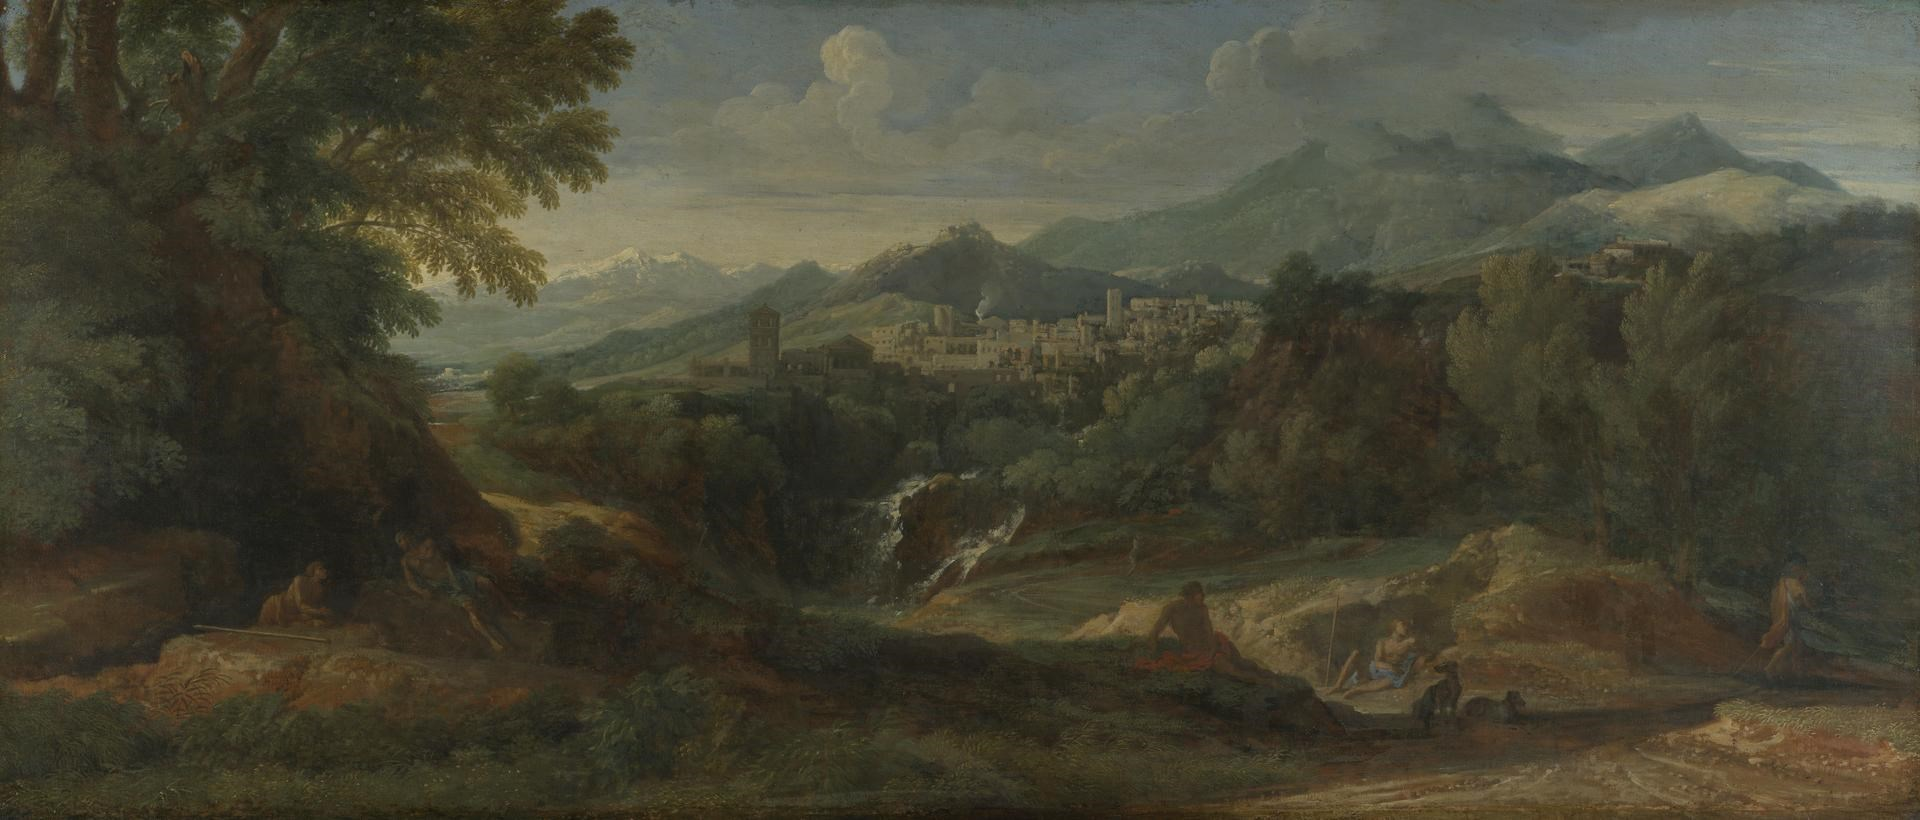 View of the Roman Countryside, possibly Tivoli by Gaspard Dughet